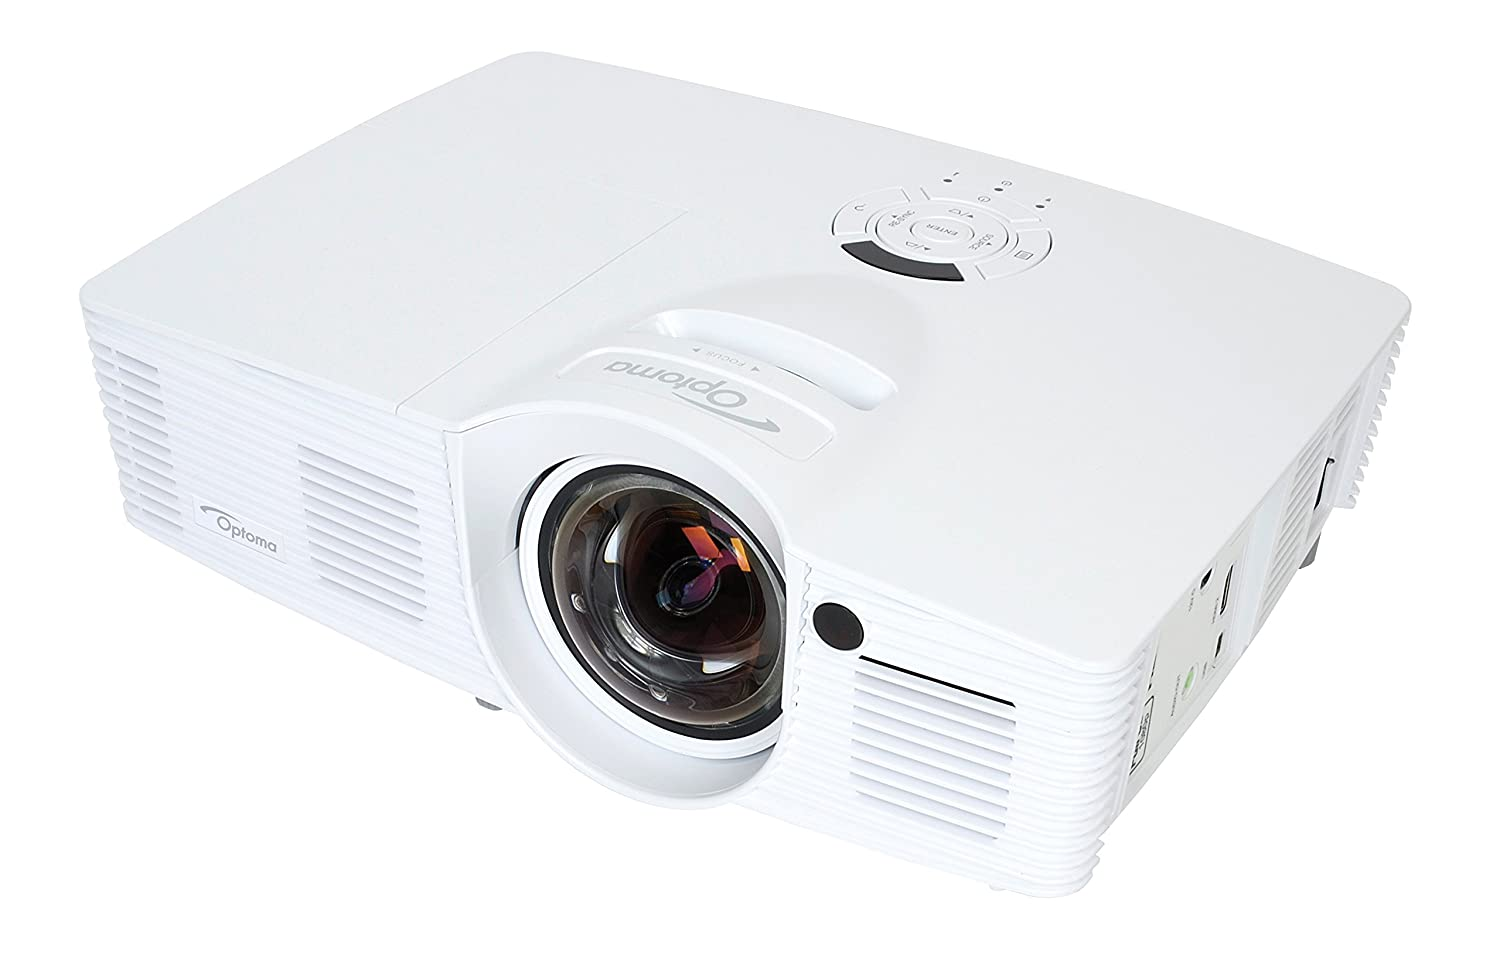 Optoma GT1080 Full 3D 1080p 2800 Lumen DLP Gaming Projector with MHL Enabled HDMI Port ready for PS4 and Xbox One